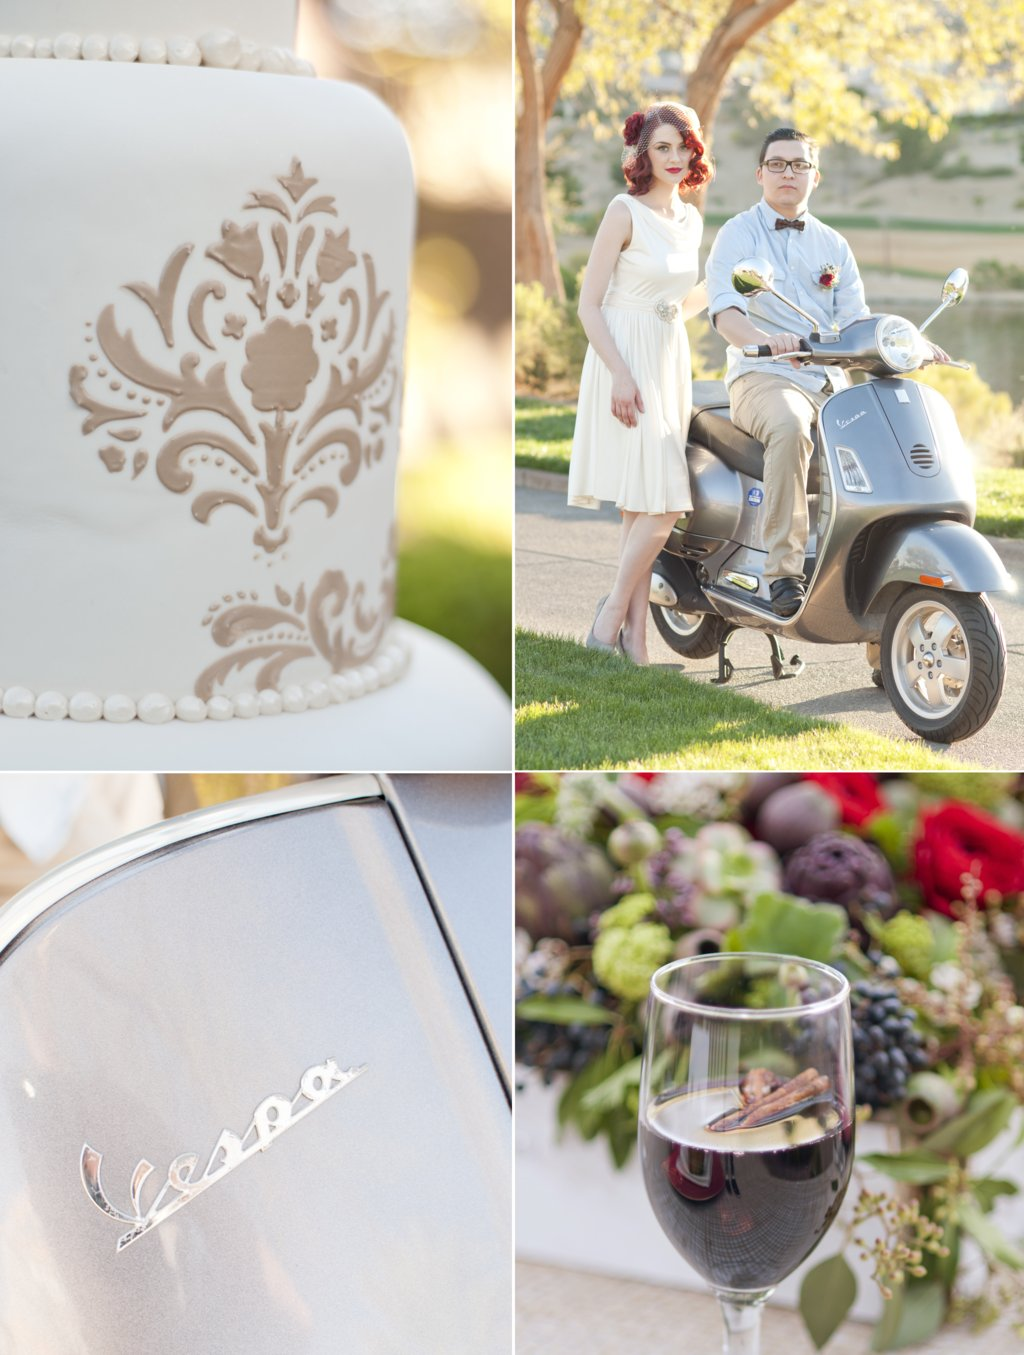 Romantic-wedding-inspiration-for-fall-outdoor-weddings-parisian-inspired-2.full